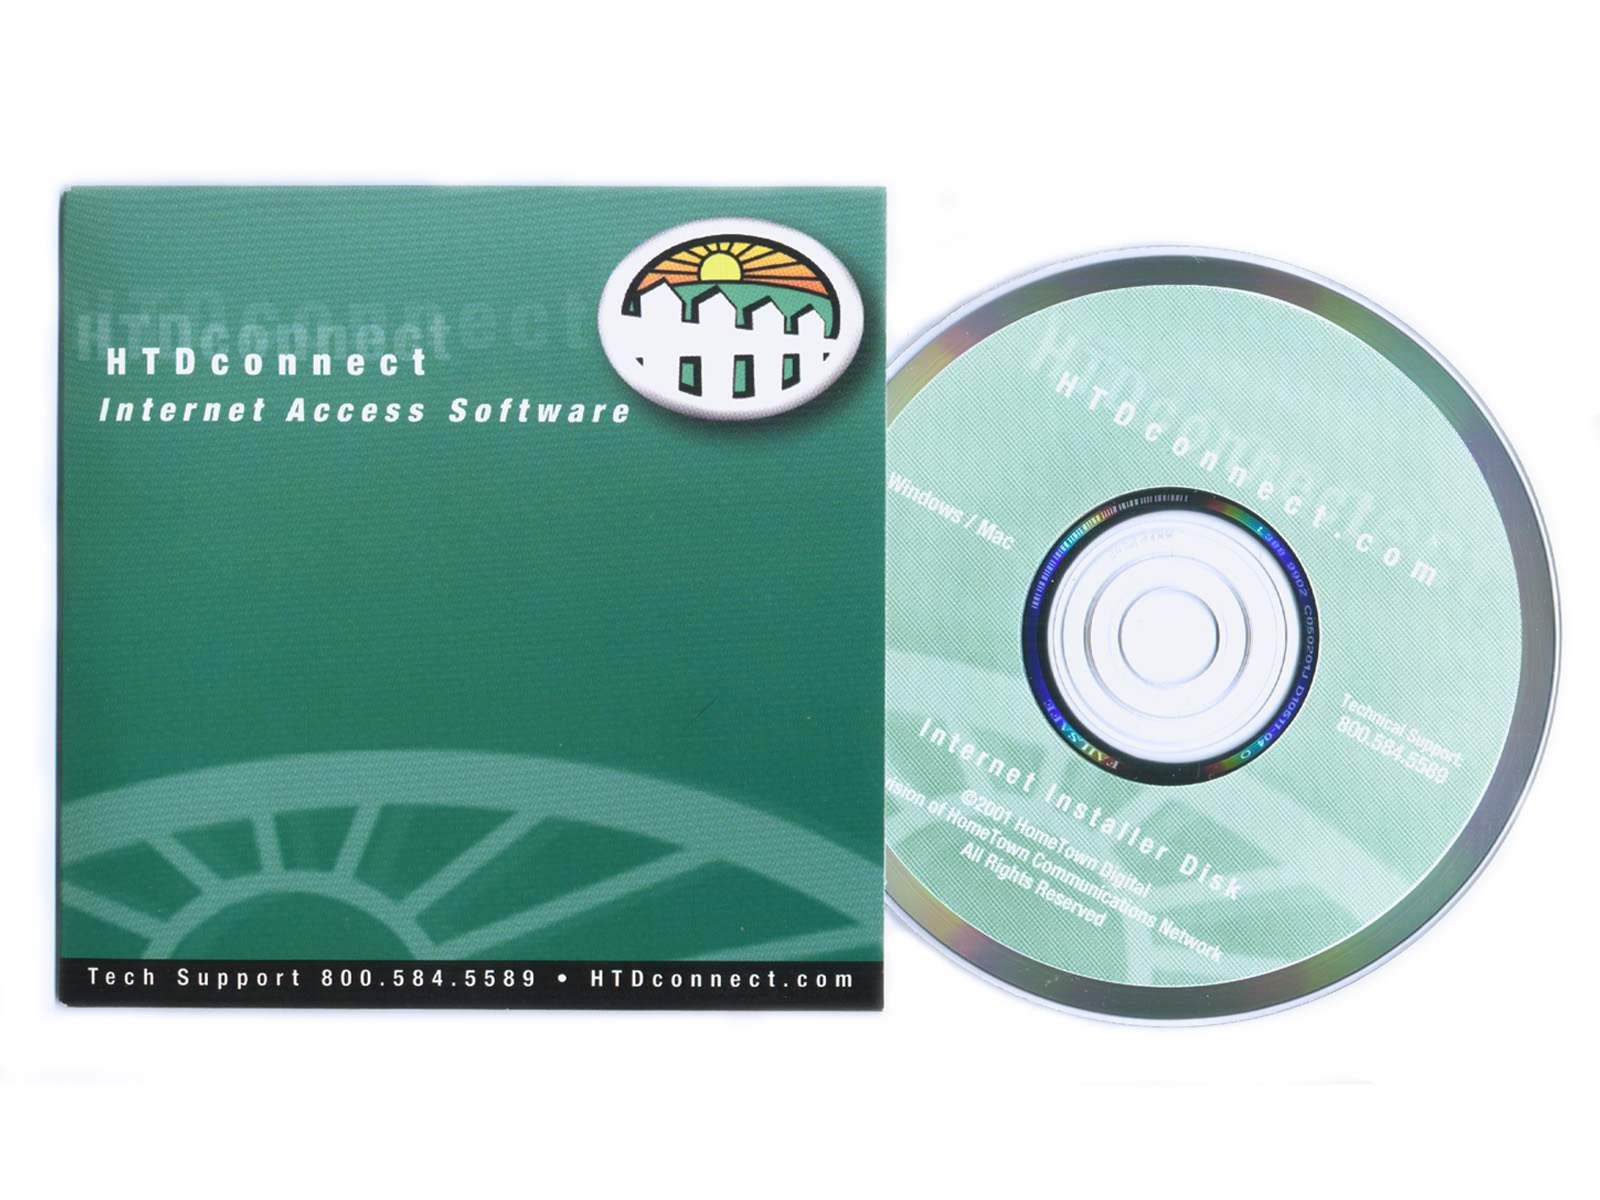 HTD connect CD and cover